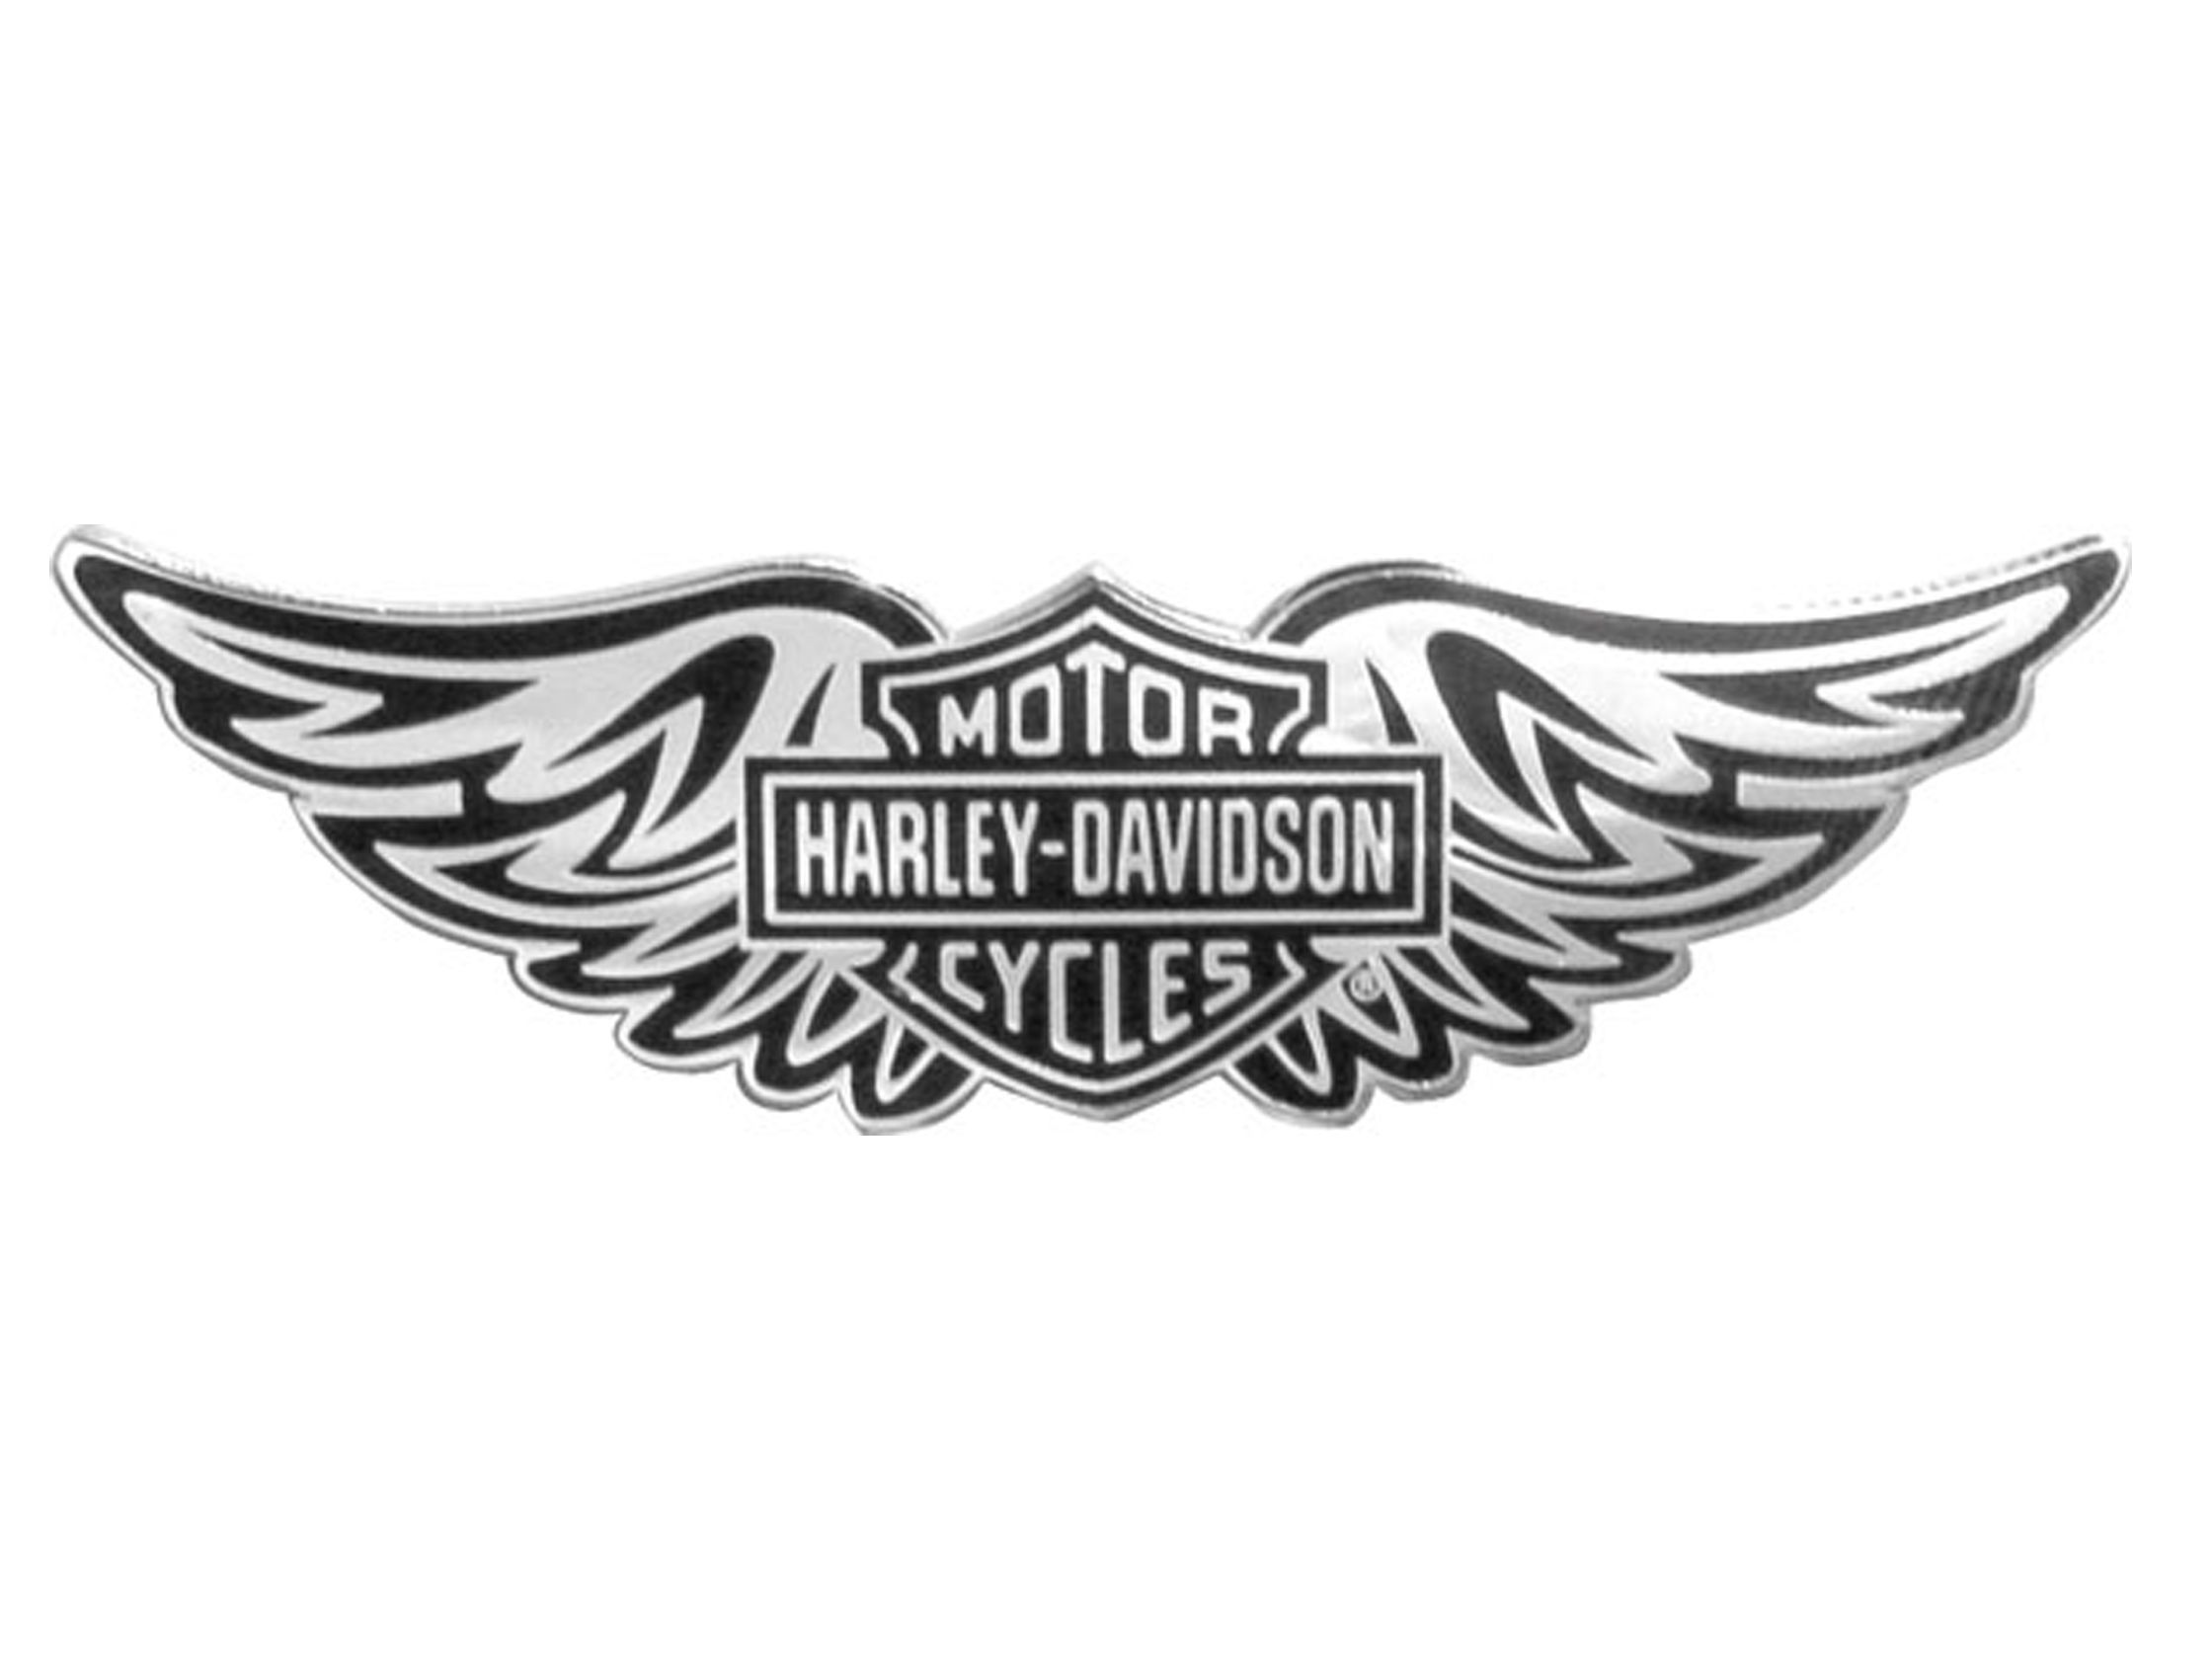 Agree, remarkable winged logos vintage magnificent idea